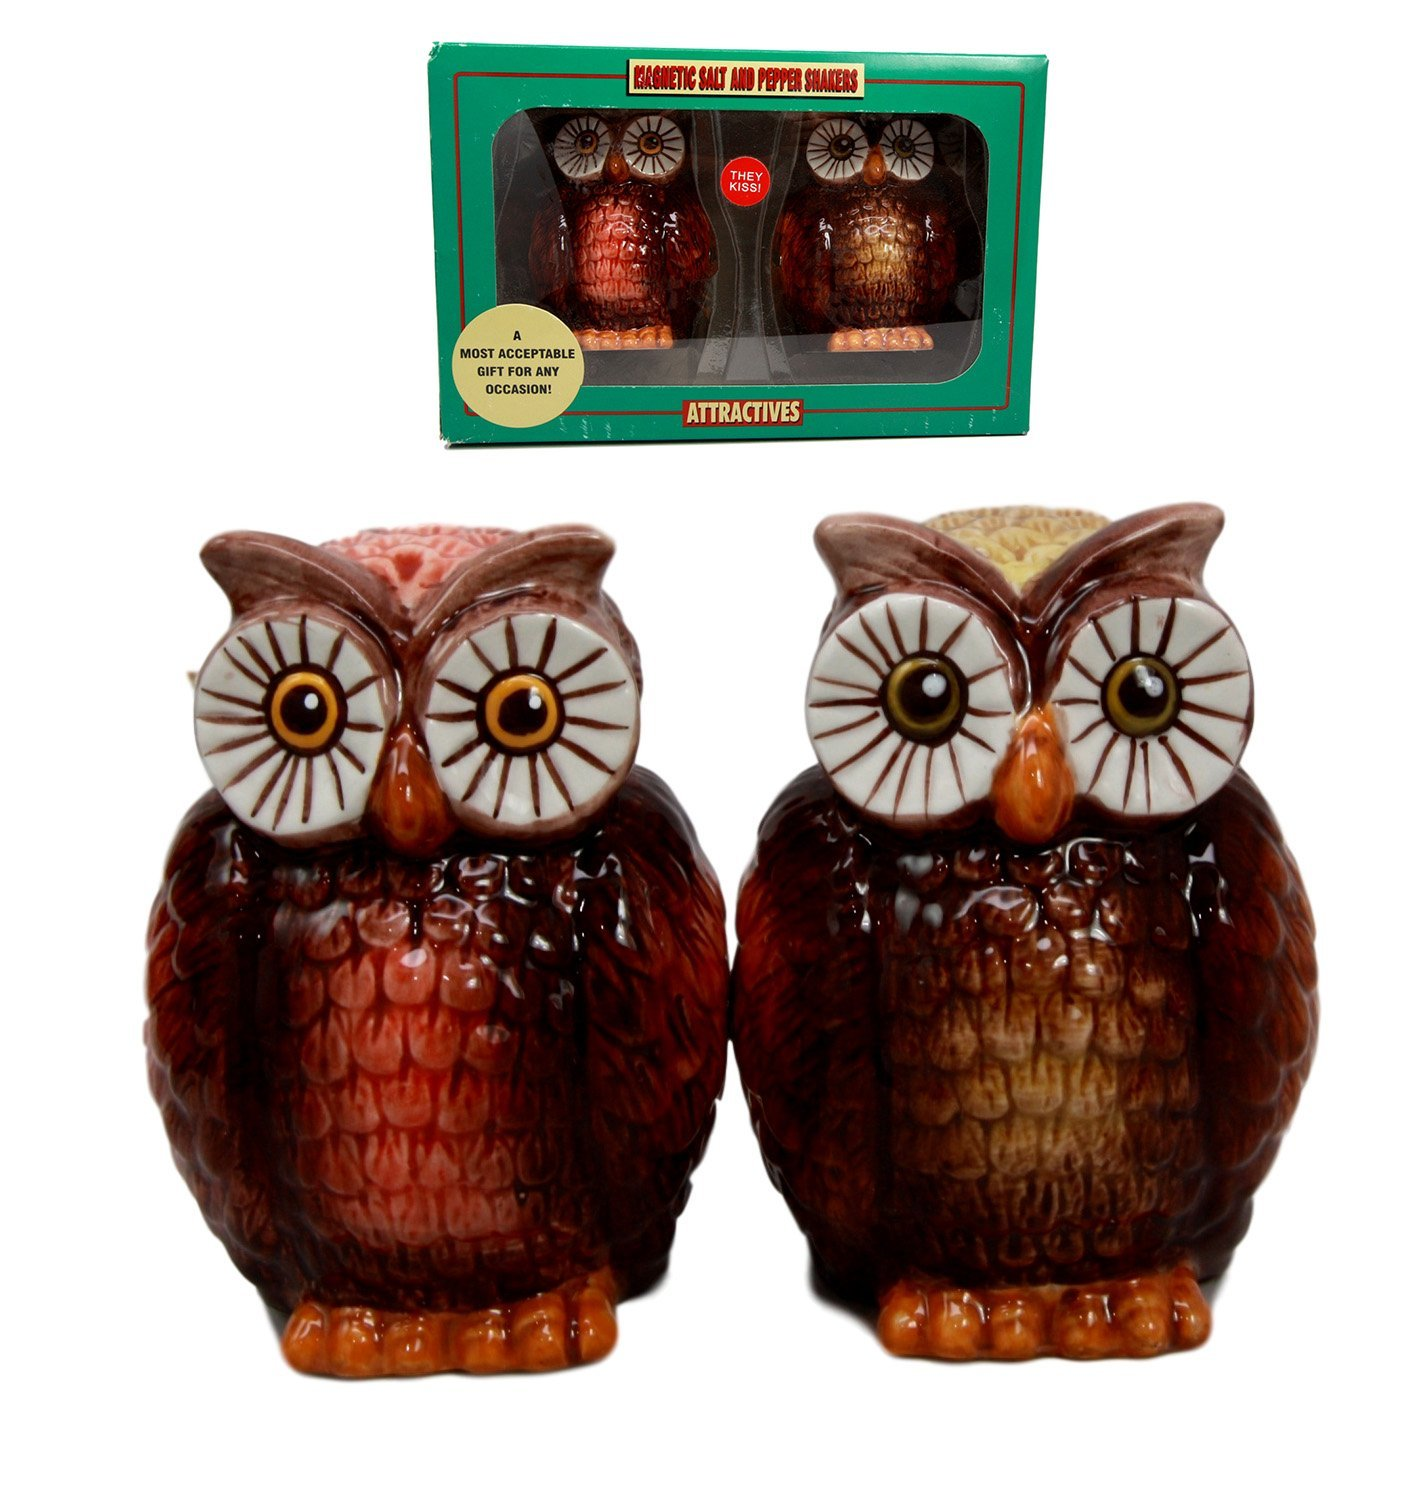 Nocturnal Tropical Great Horned Owl Couple Ceramic Salt Pepper Shakers Set Figurines